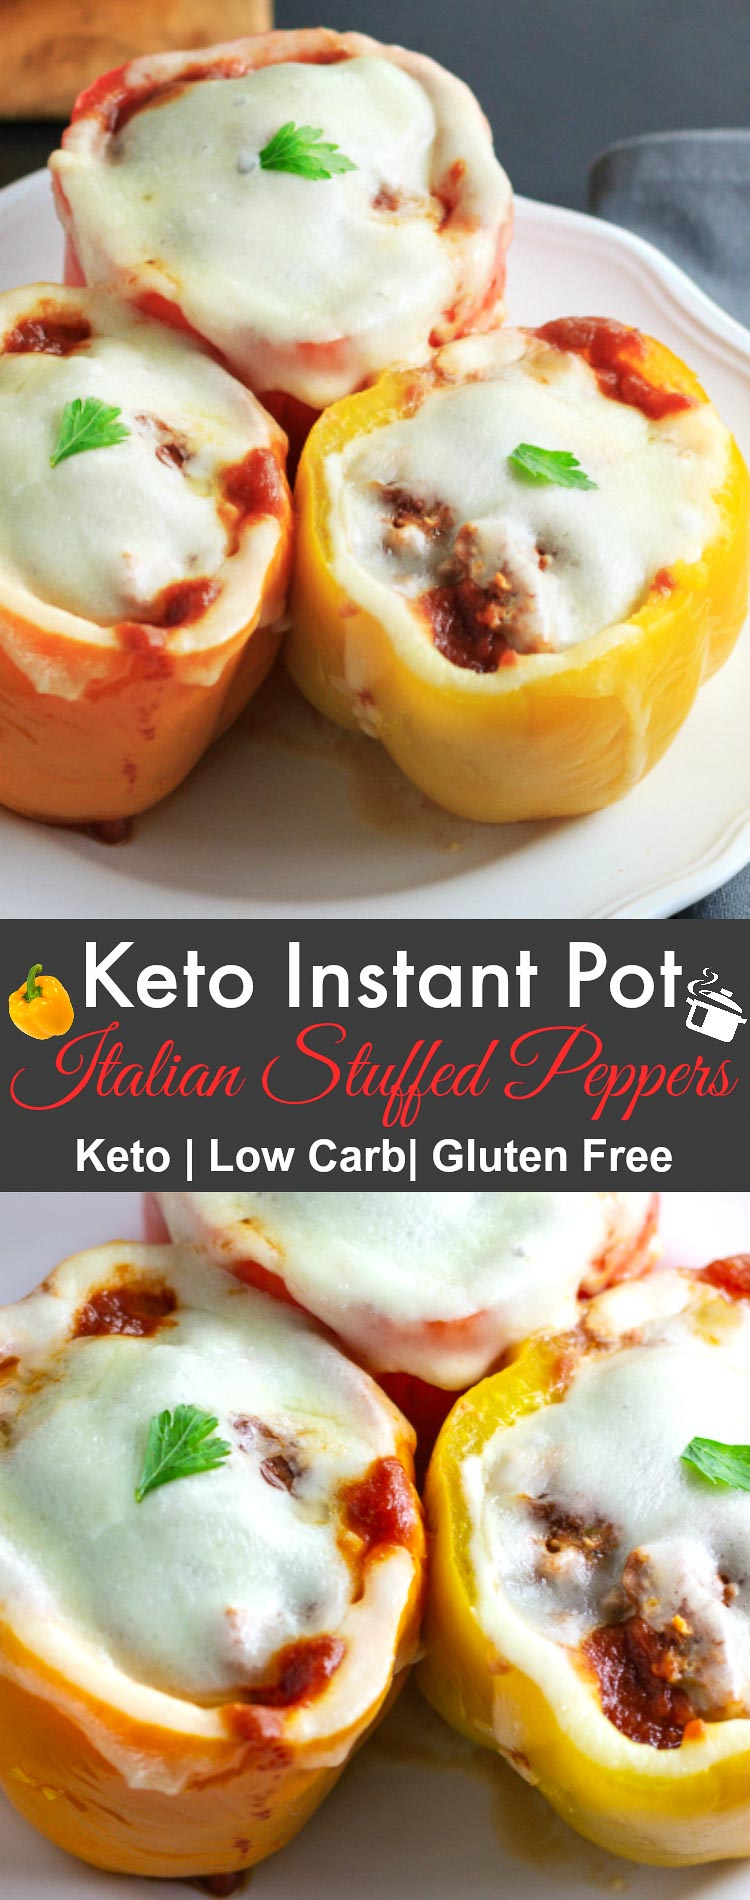 Keto Instant Pot Italian Stuffed Peppers- Low Carb & gluten free , Italian style stuffed peppers.